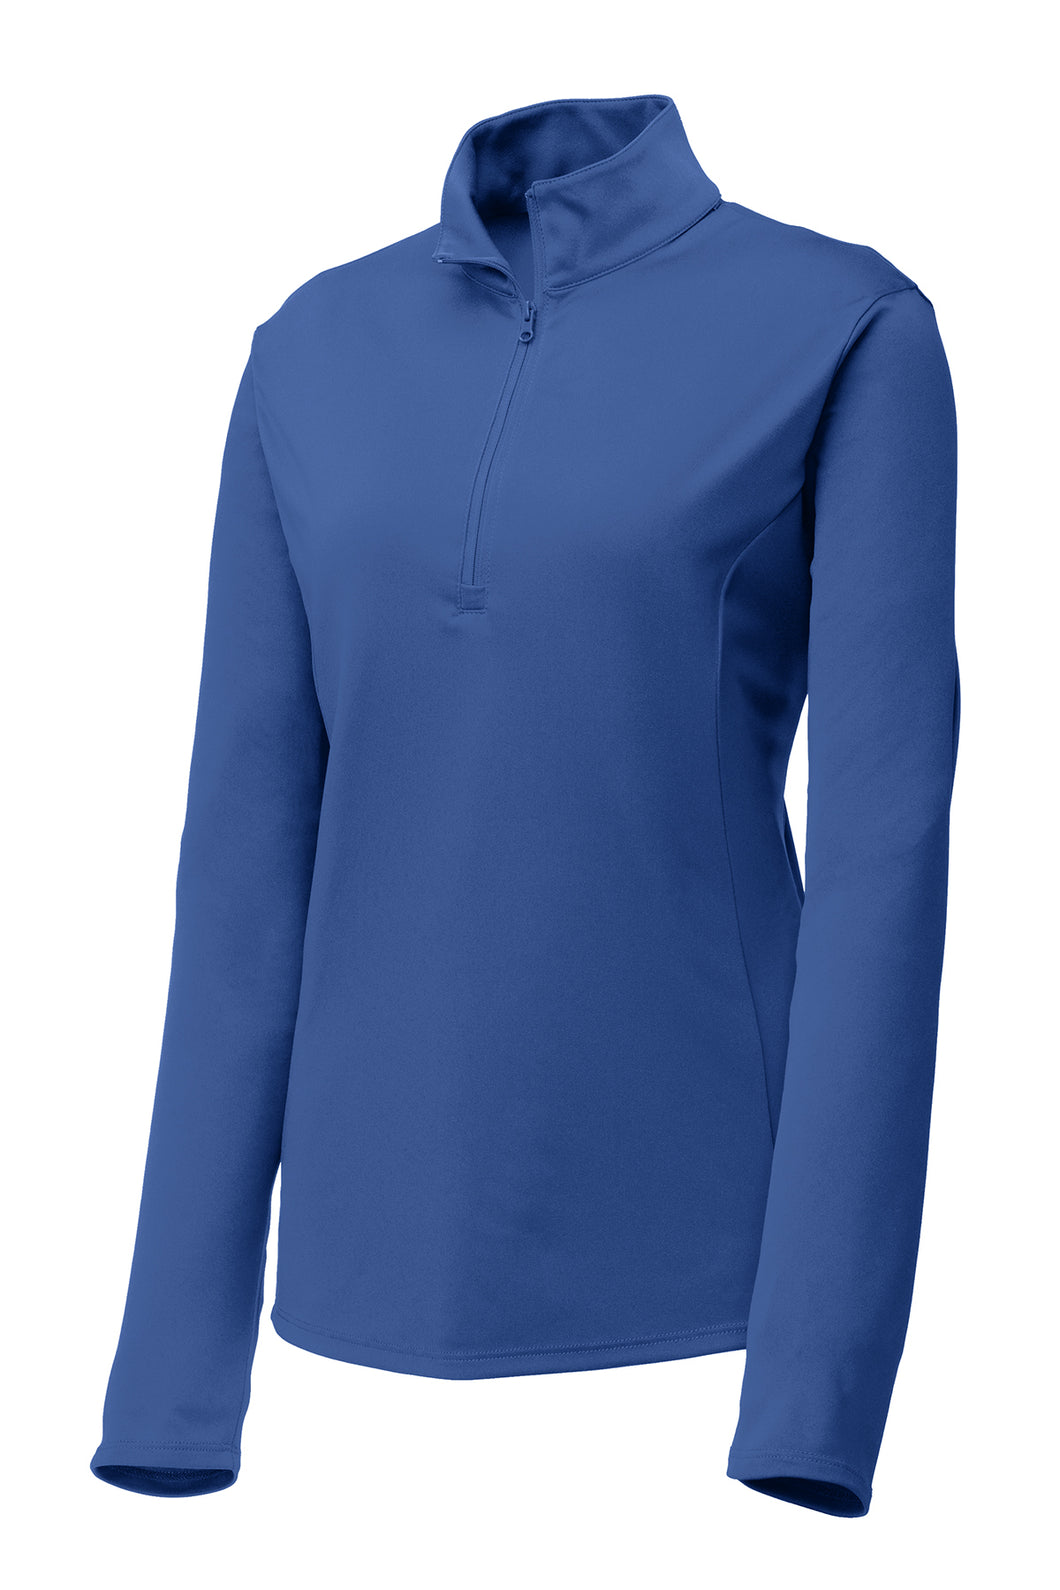 Ladies Quarter-zip Comfort Performance Pullover - Royal